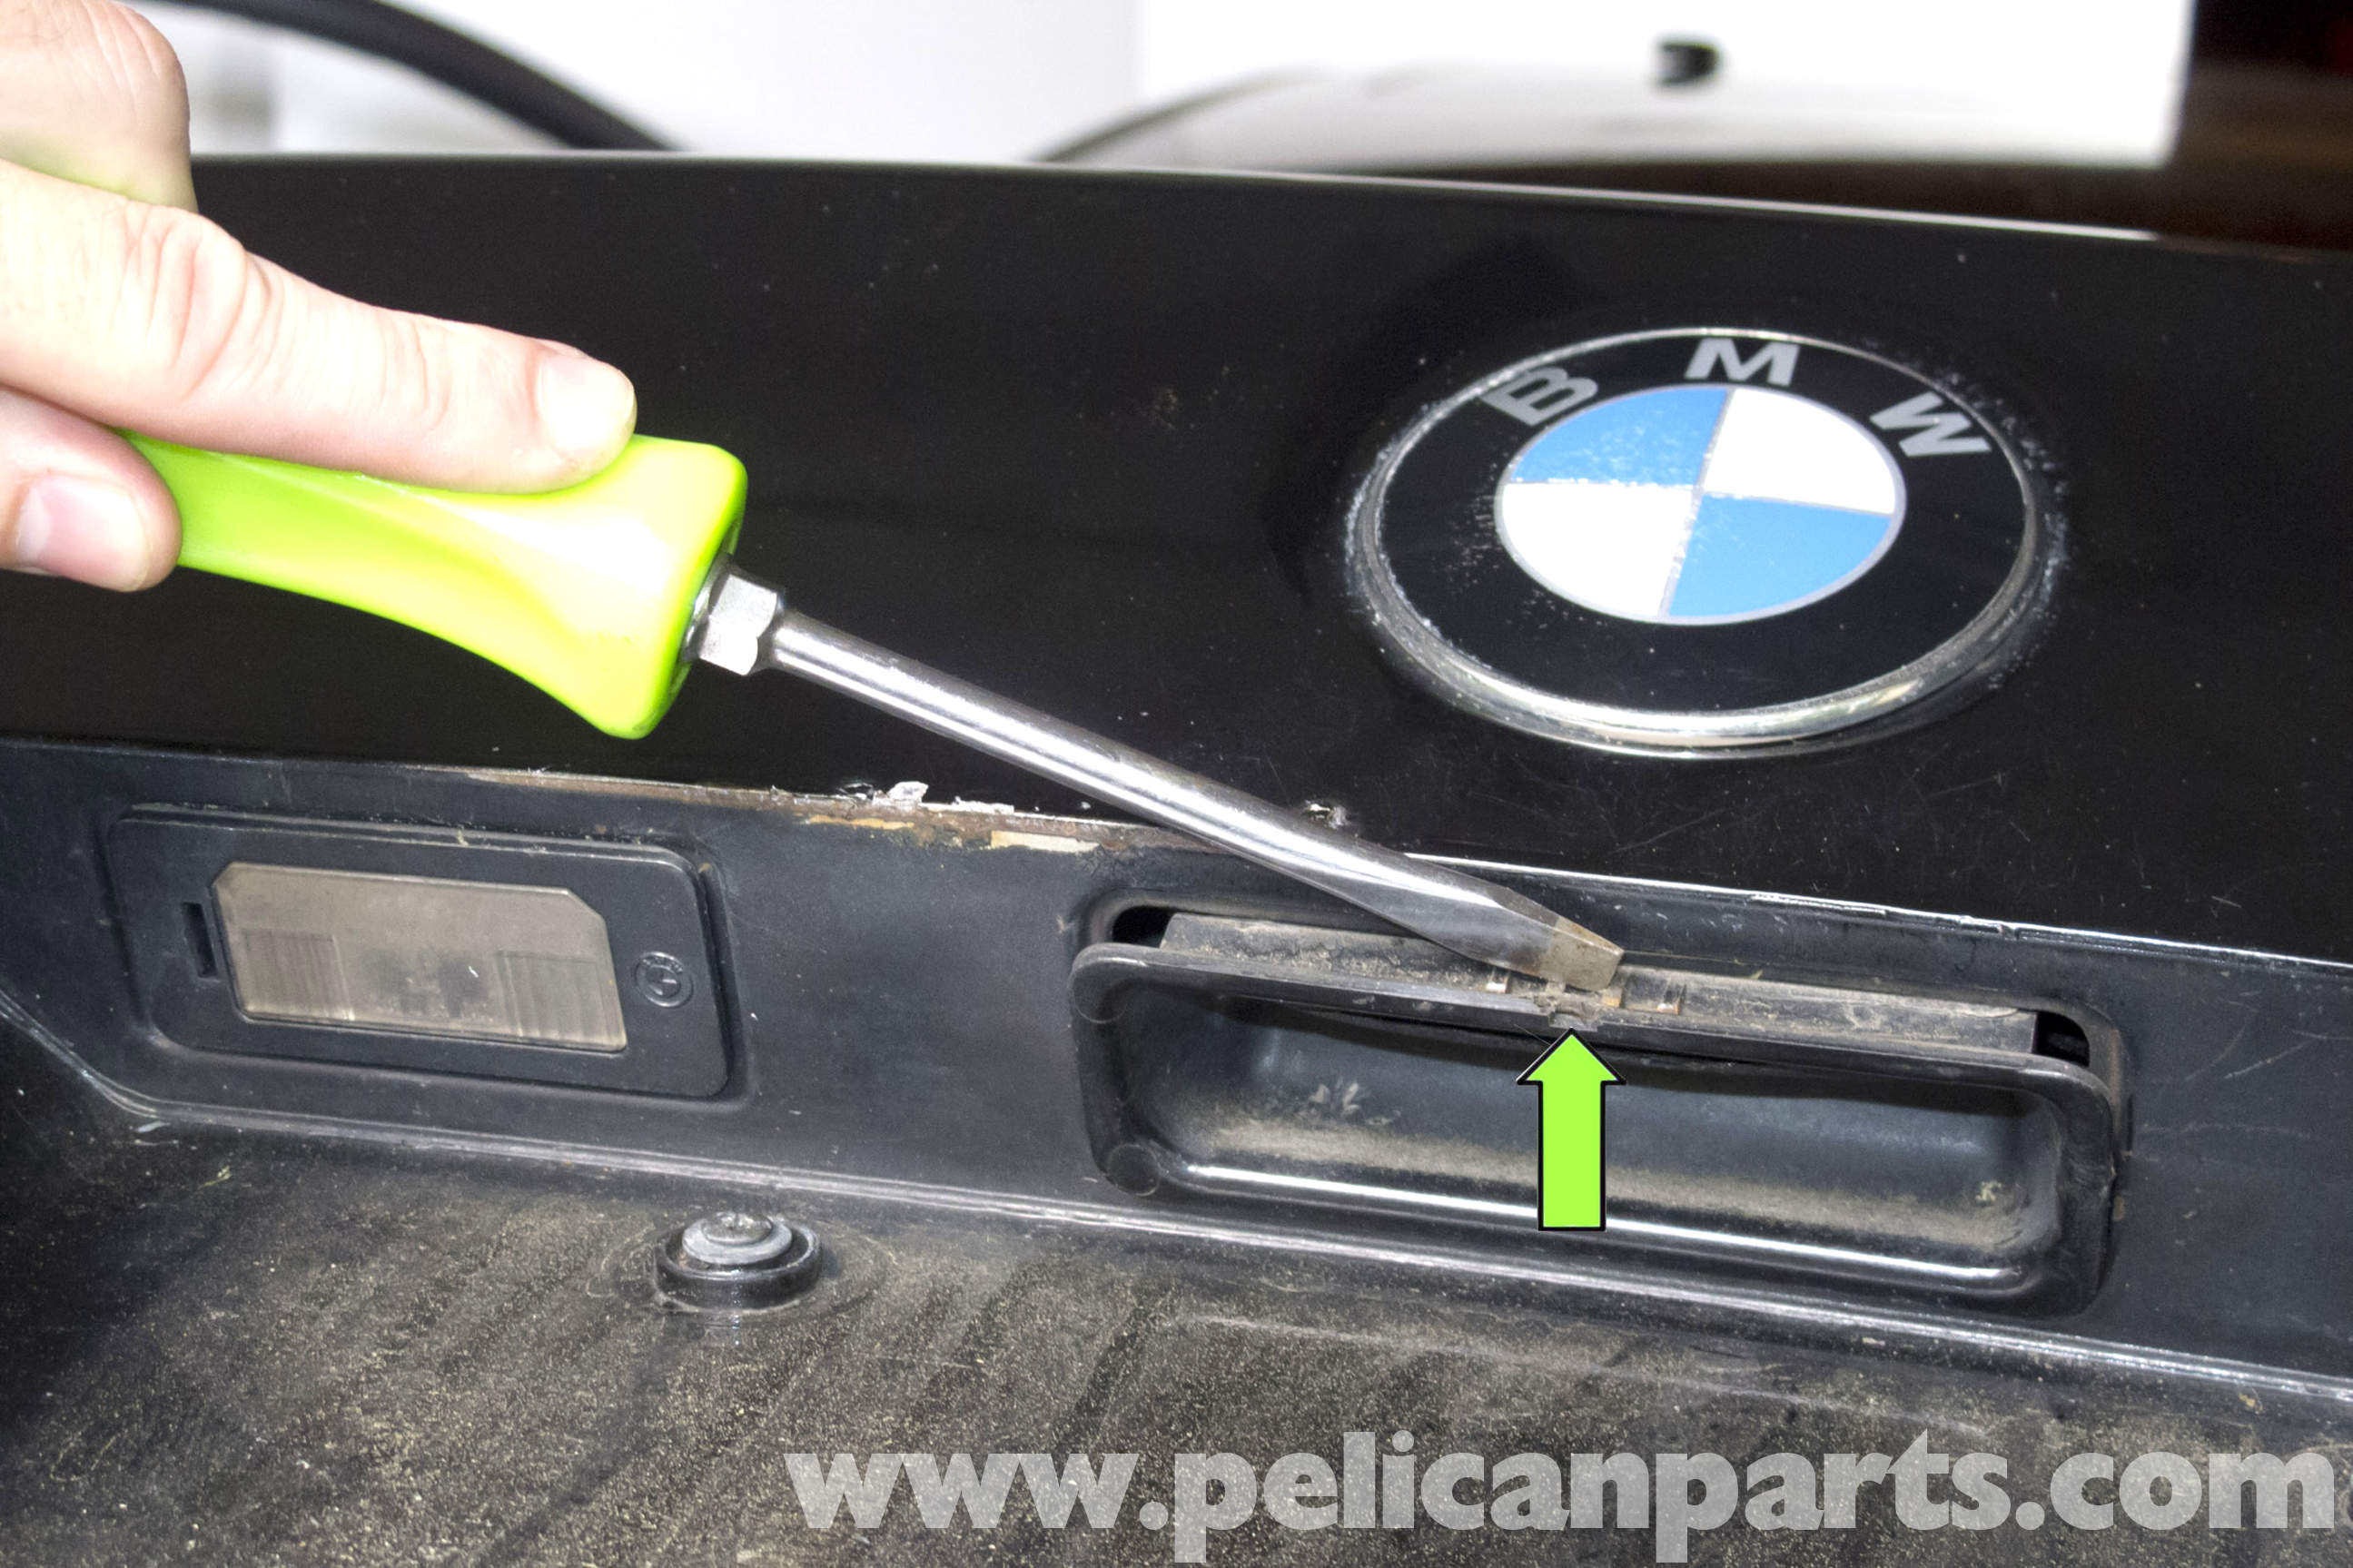 BMW E39 5 Series Trunk Release Button Replacement 1997